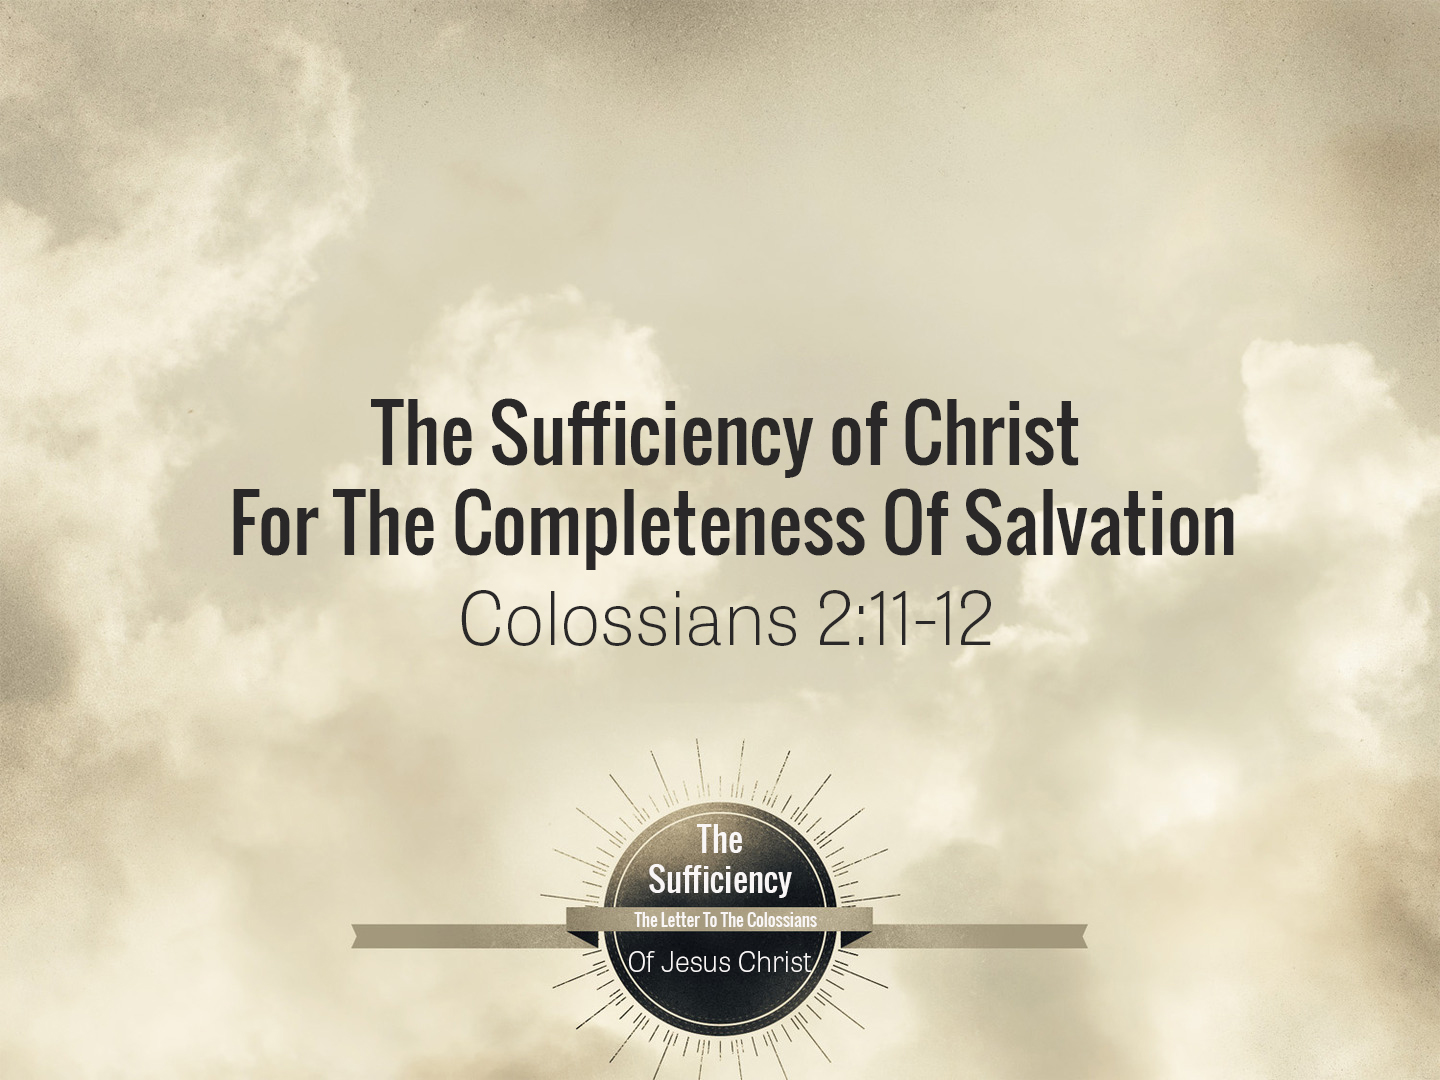 Colossians 2v11-12 The Sufficiency Of Christ For The Completeness Of Salvation